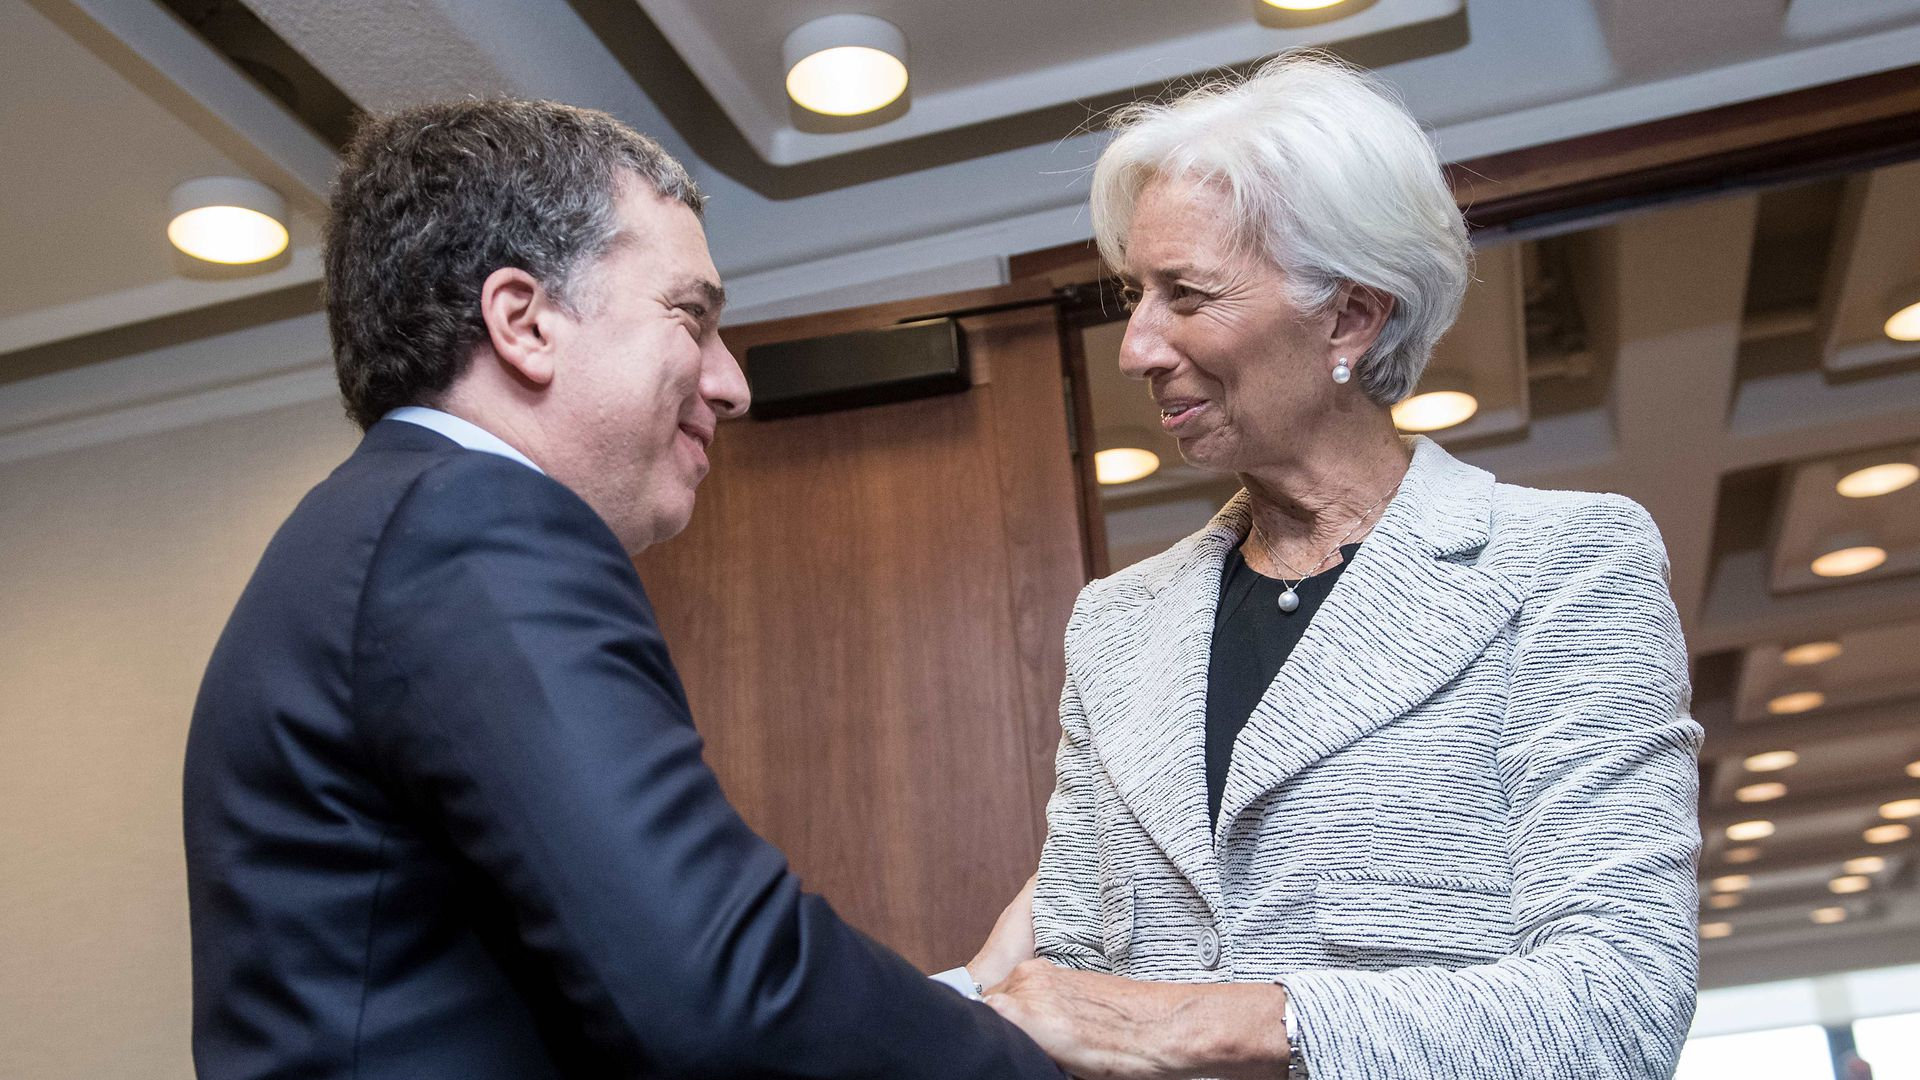 IMF Managing Director Christine Lagarde and Argentinian Economy Minister Nicolas Dujovne. Photo: Nicholas Kamm/AFP/Getty Images